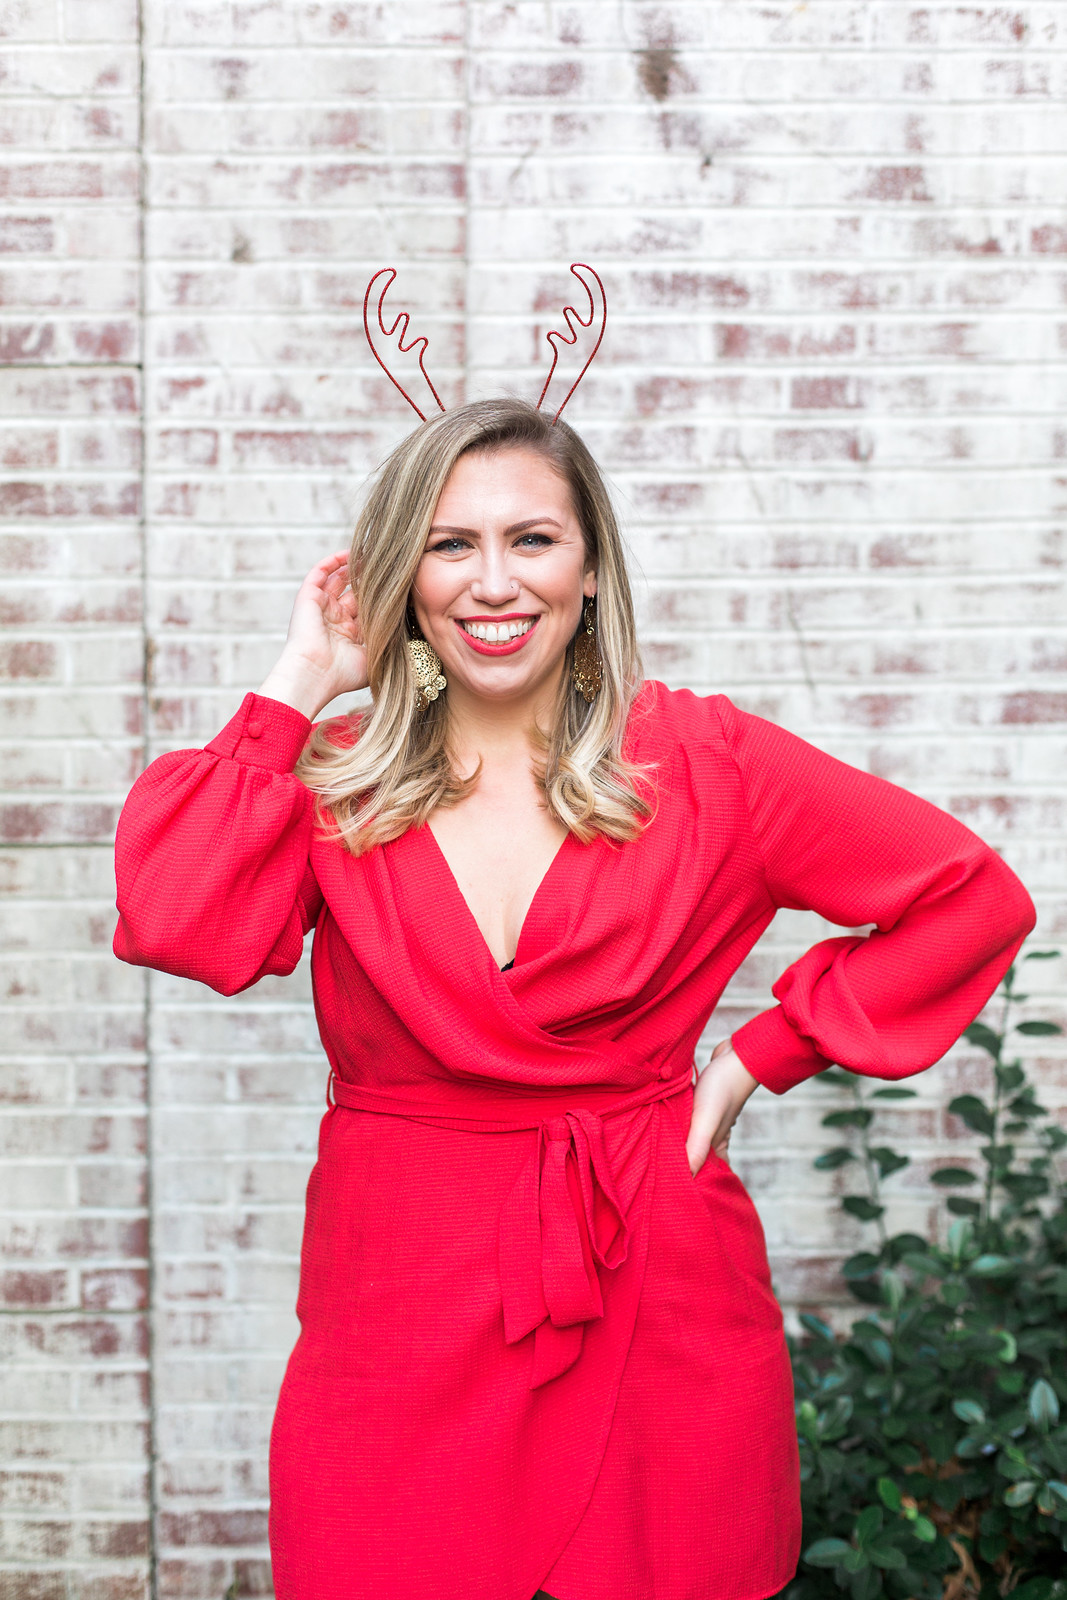 Red Wrap Dress Christmas Photo Reindeer Antler Headband | Darien, CT Kristina Staal Photography